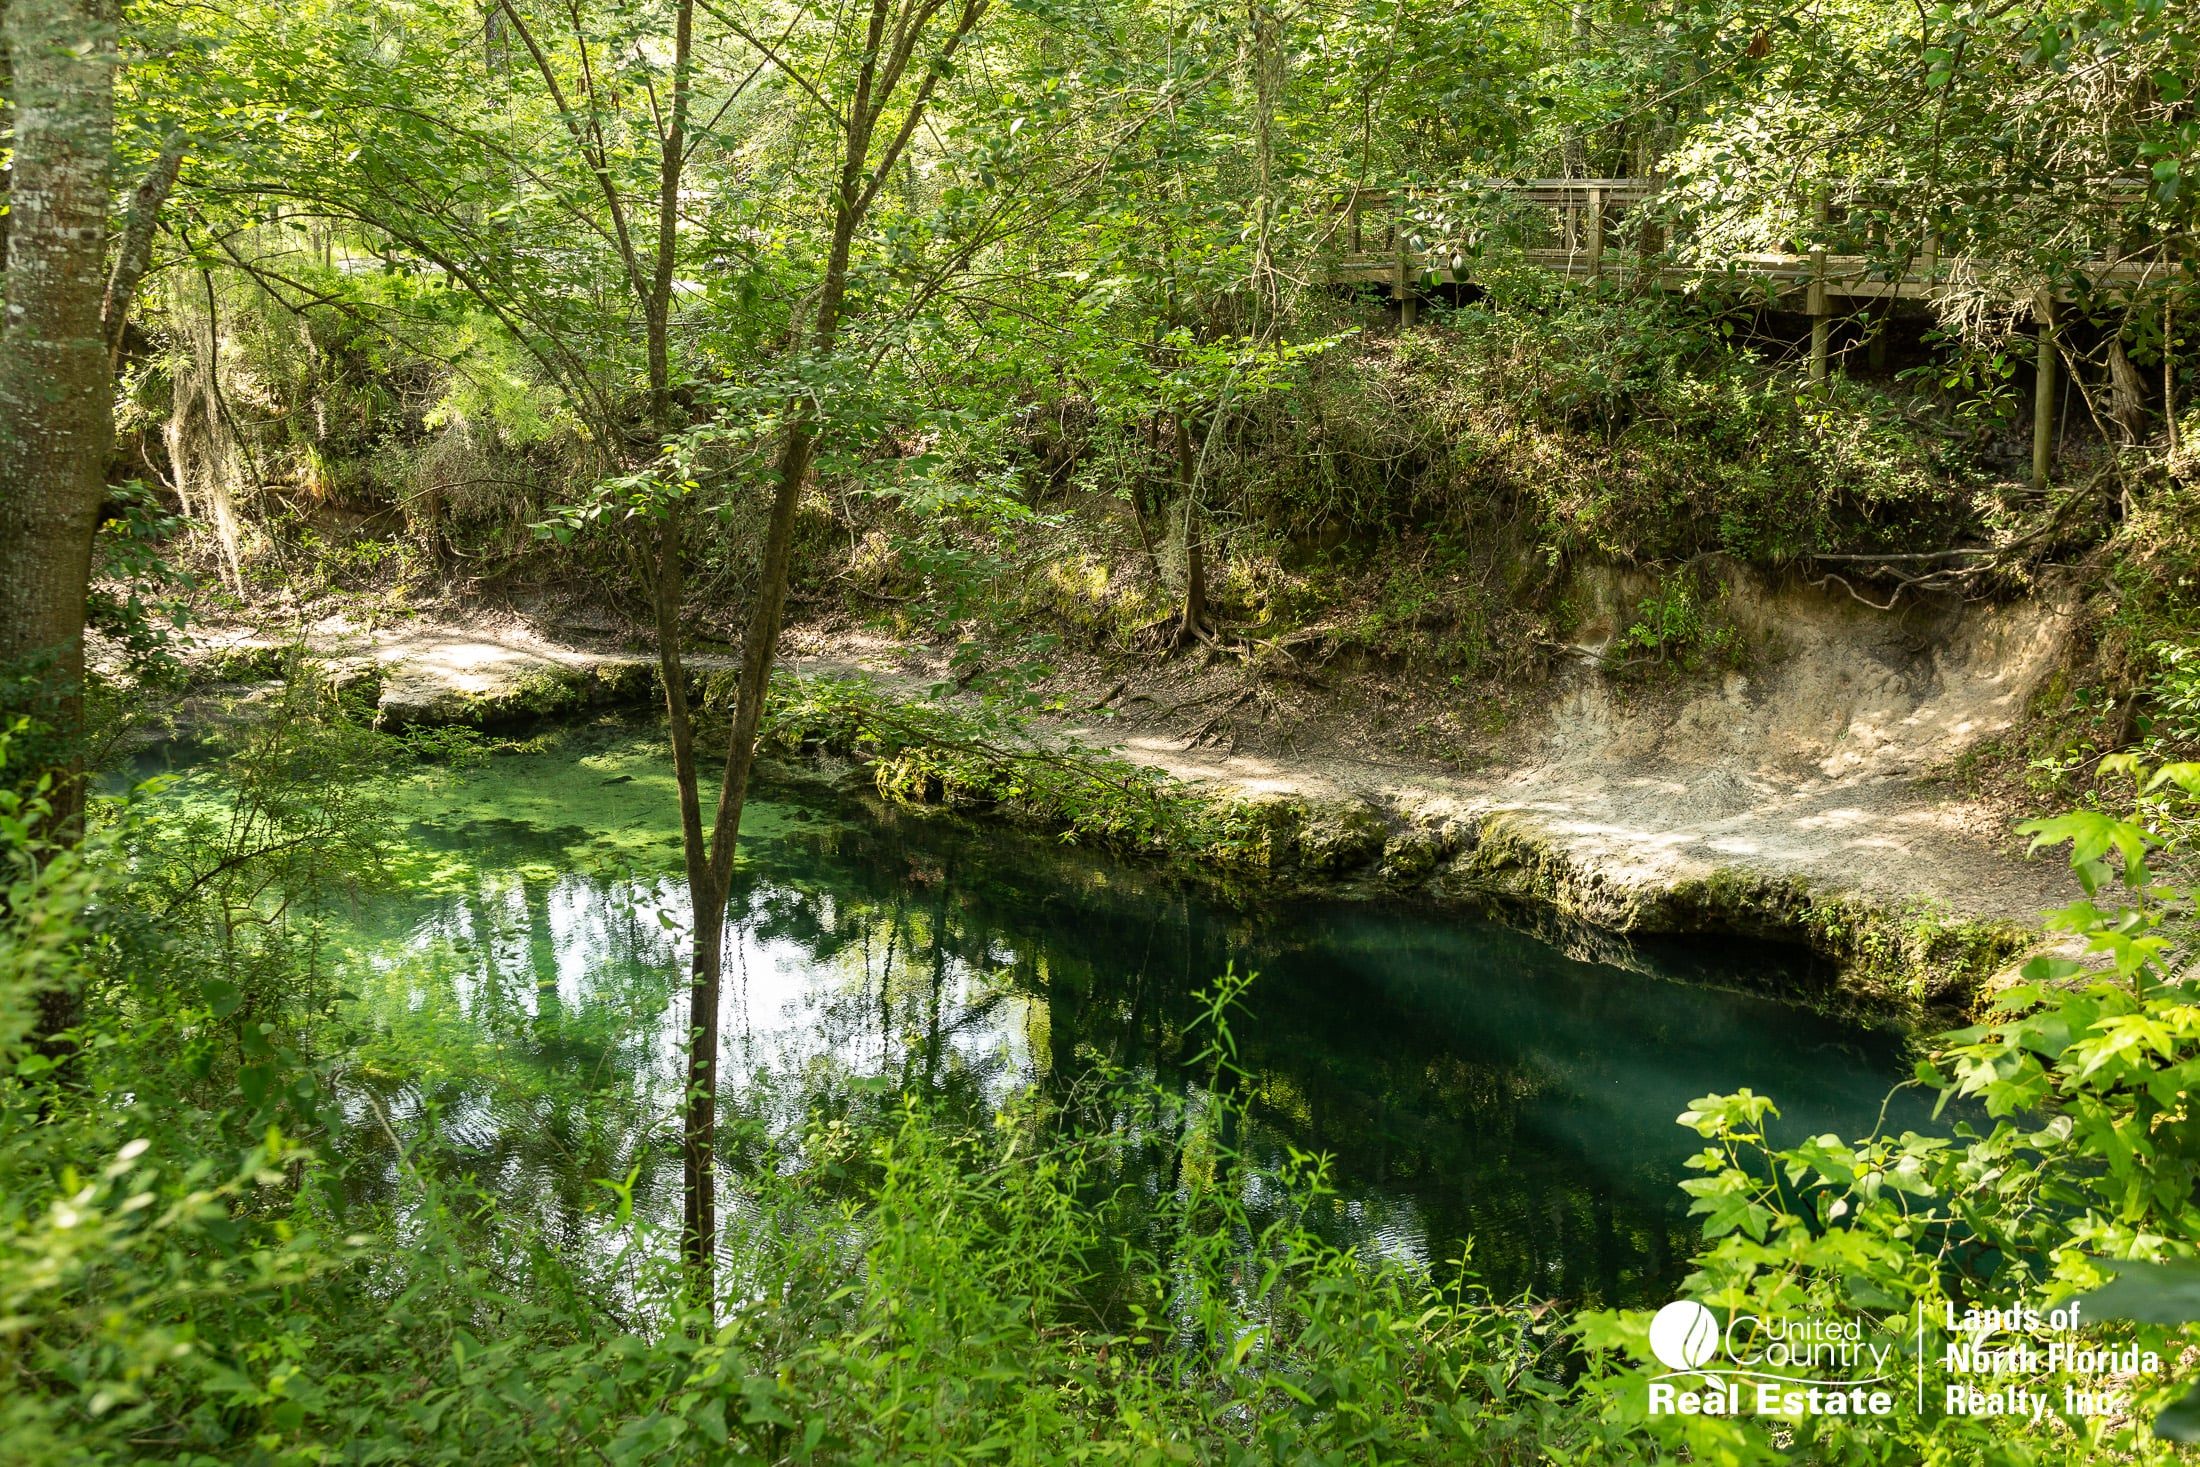 View of Lafayette Blue Spring